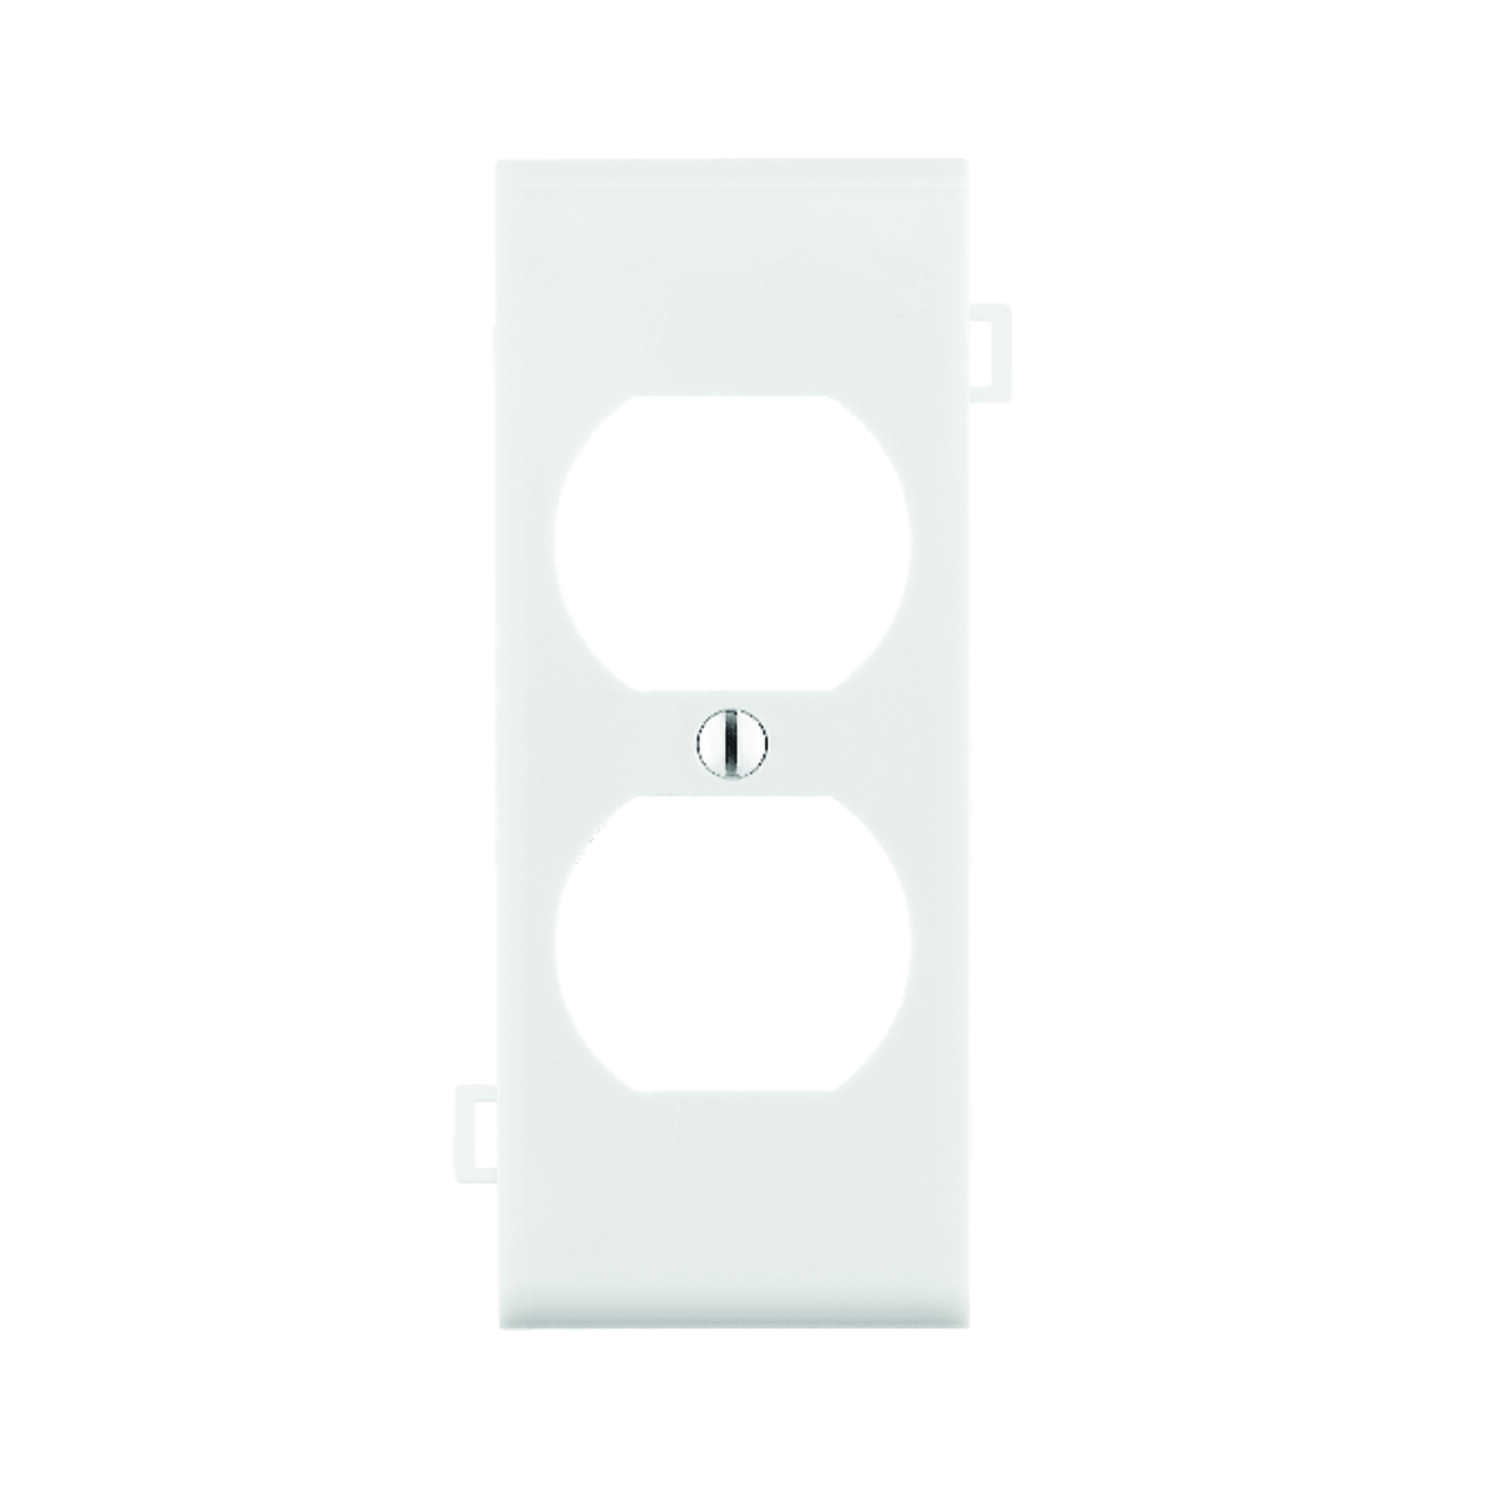 Leviton  Center Section  White  1 gang Nylon  Duplex Outlet  1 pk Wall Plate